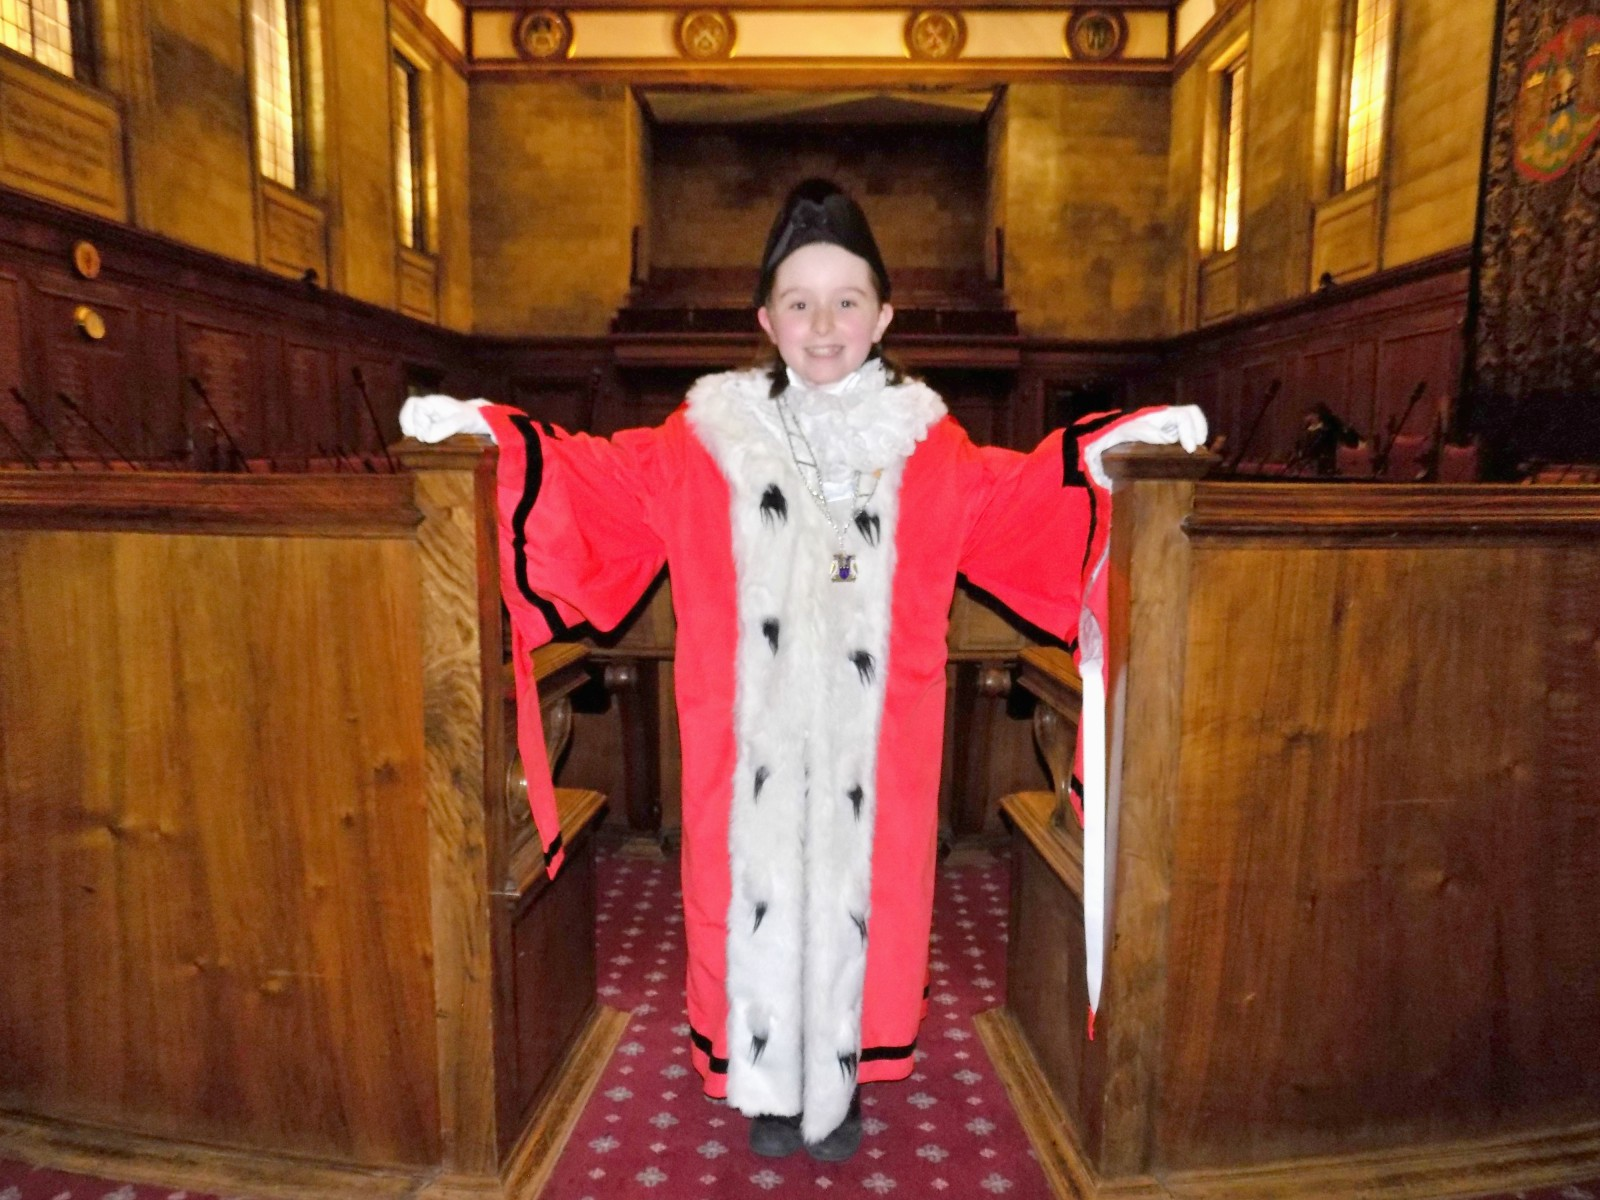 The new Leeds Children's Mayor, Grace Branford from Drighlington Primary School